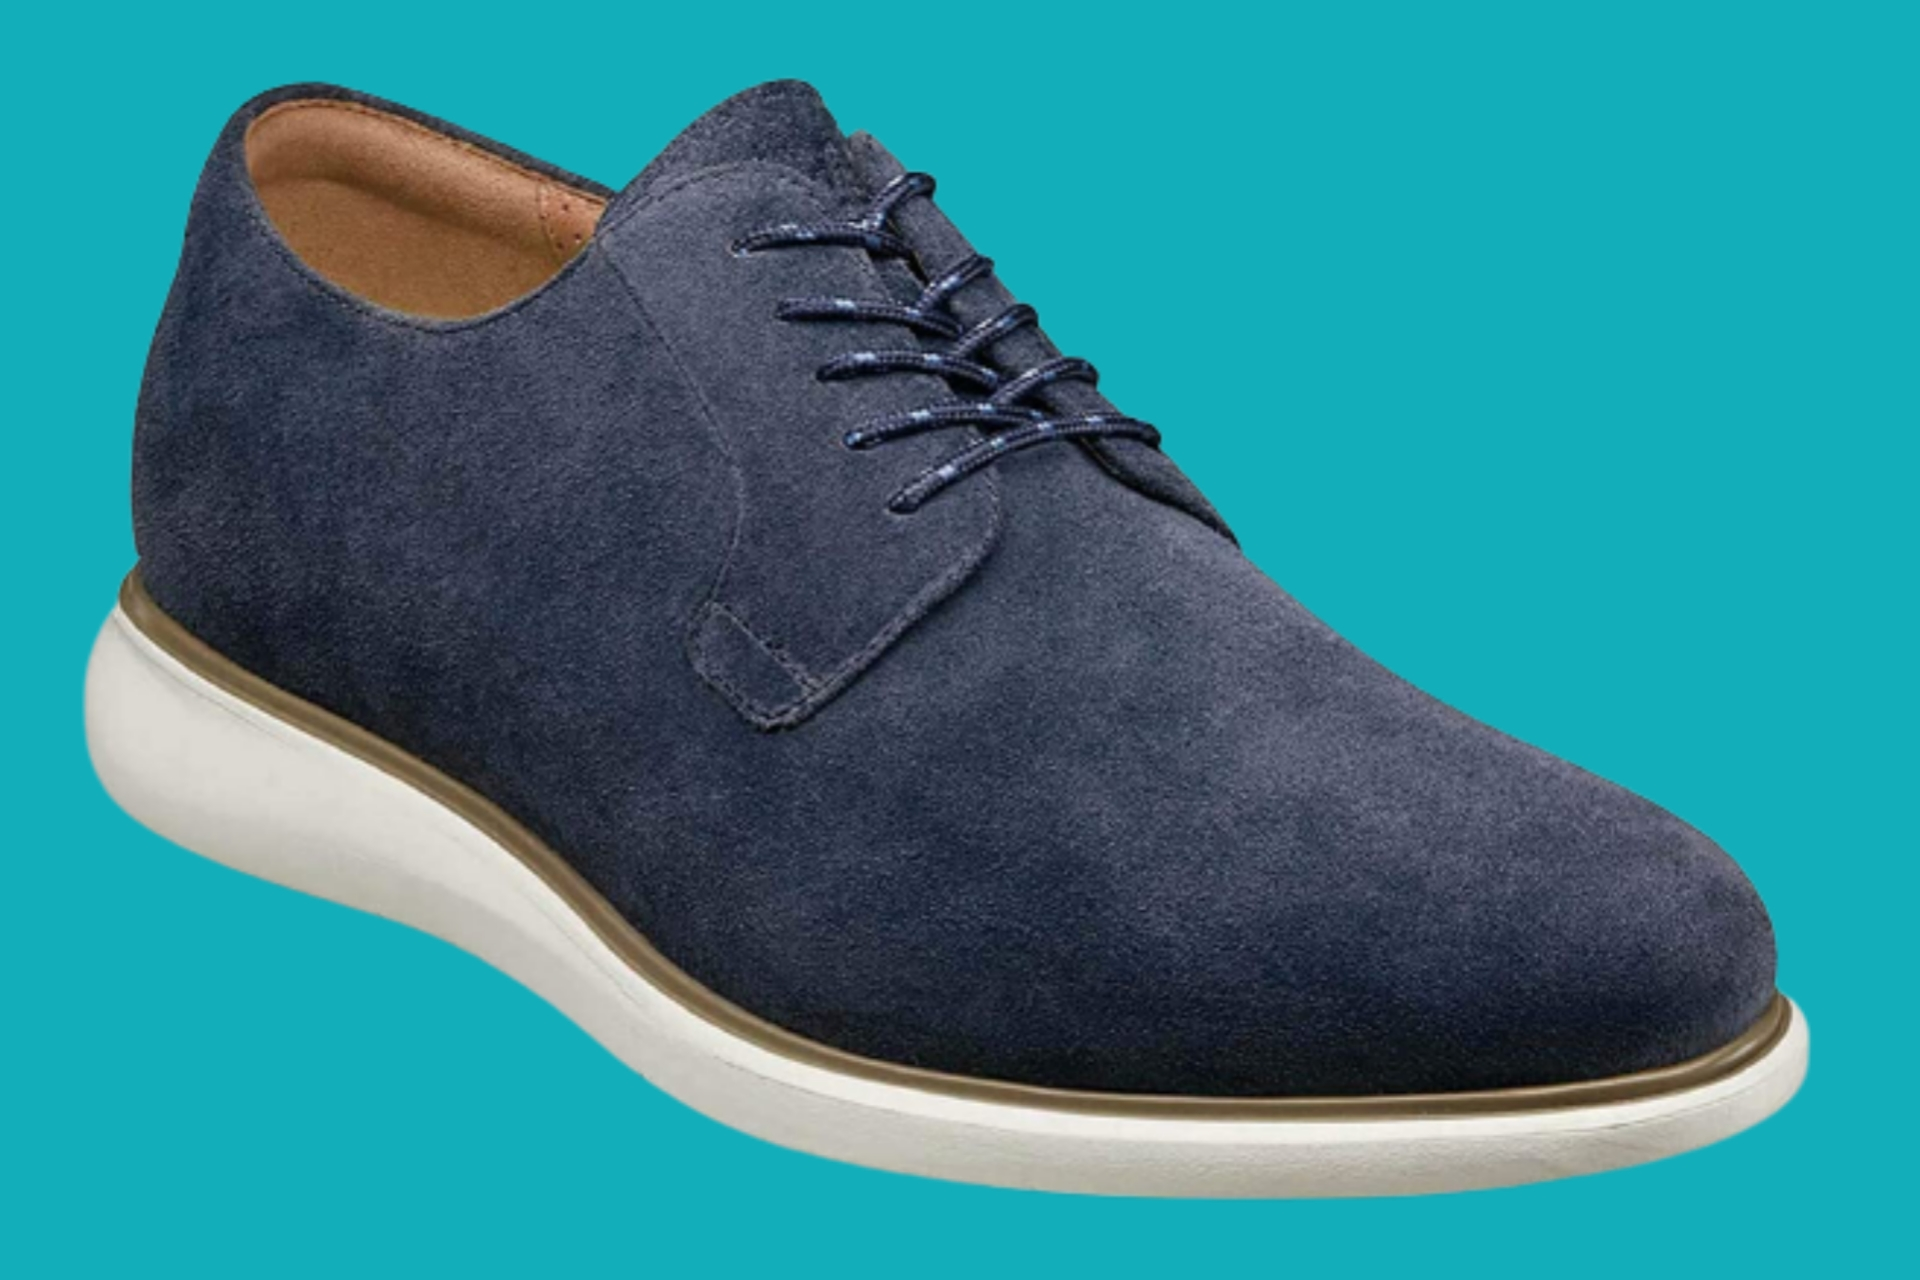 Men's Florsheim suede shoe